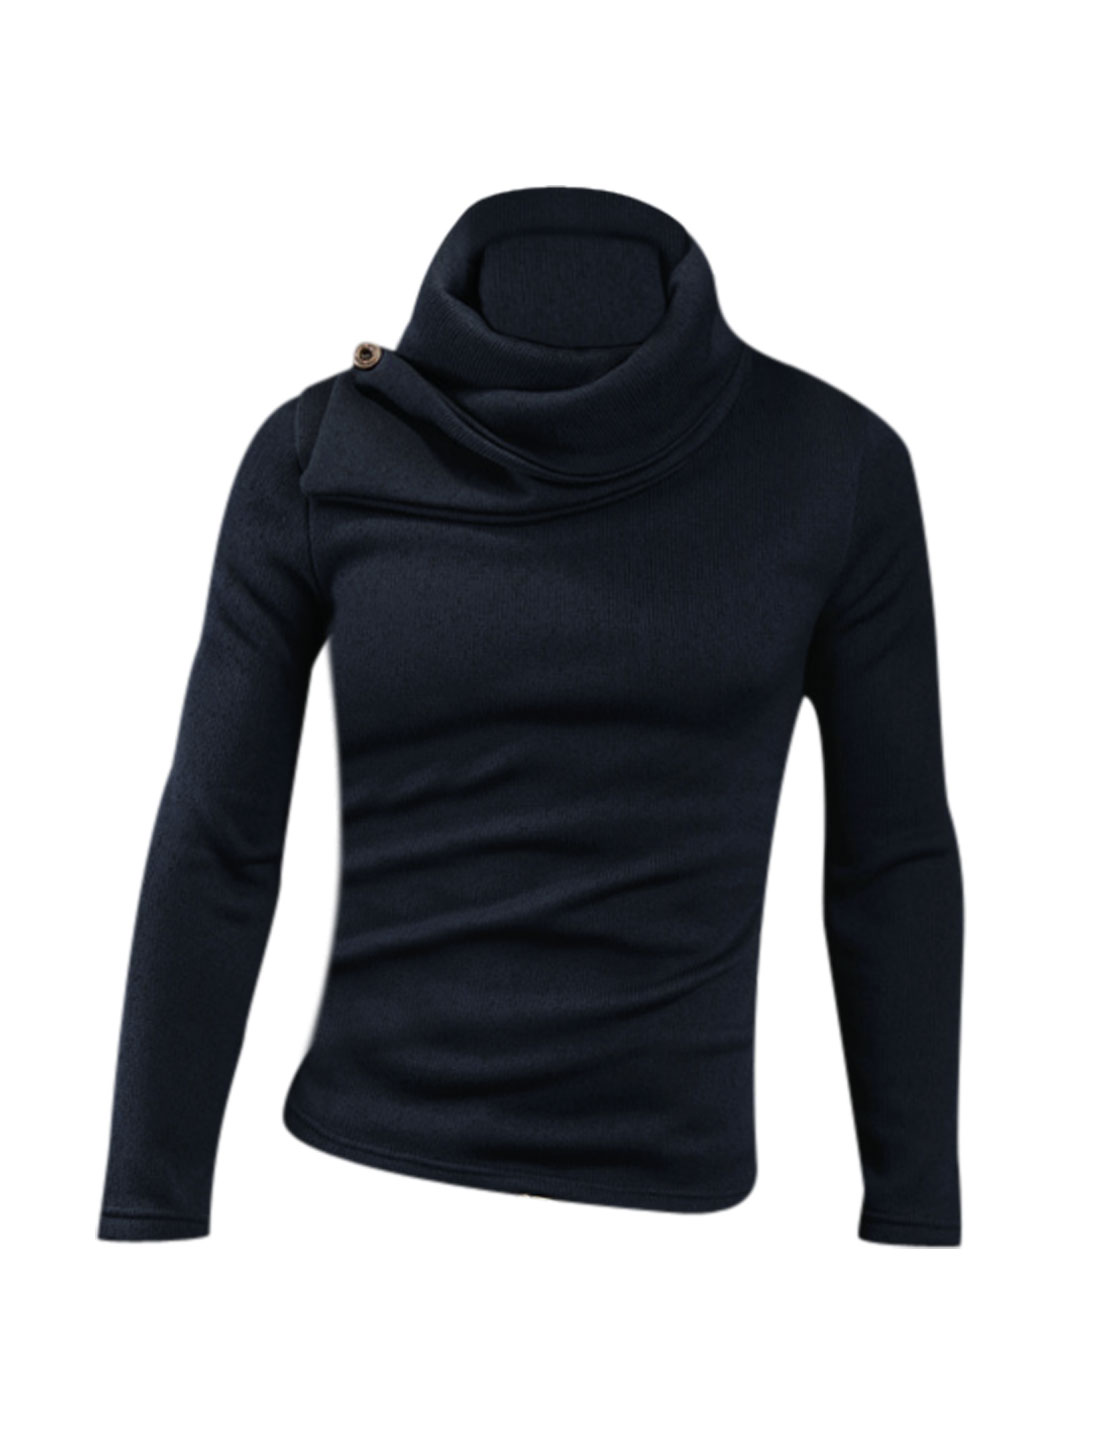 Men Navy Blue Cowl Collar Long Sleeve Pullover Cozy Fit Knit Shirt M